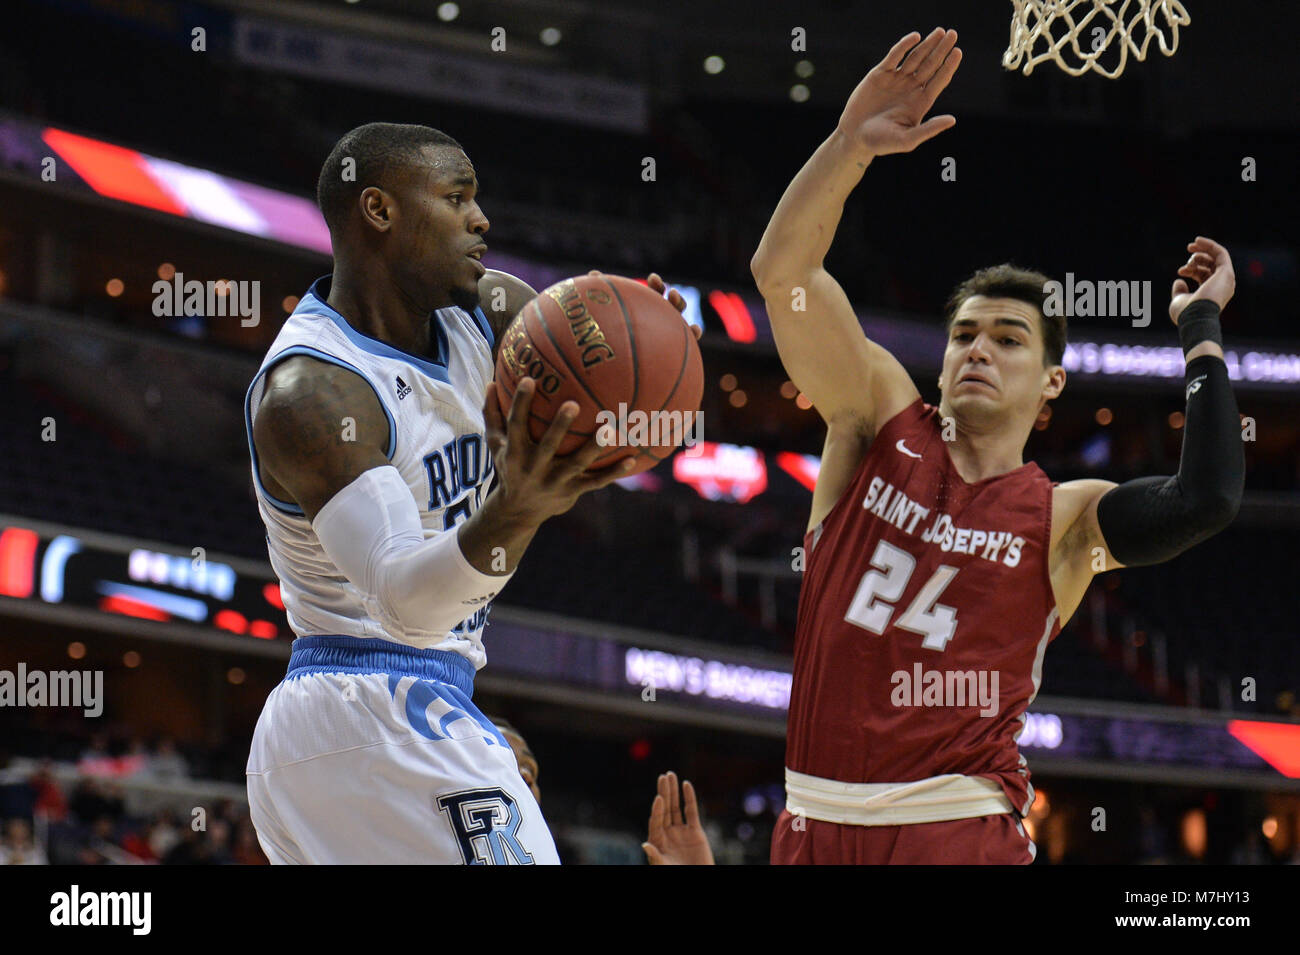 Washington, DC, USA. 10th Mar, 2018. JARED TERRELL (32) passes around PIERFRANCESCO OLIVA (24) during the semi-final - Stock Image